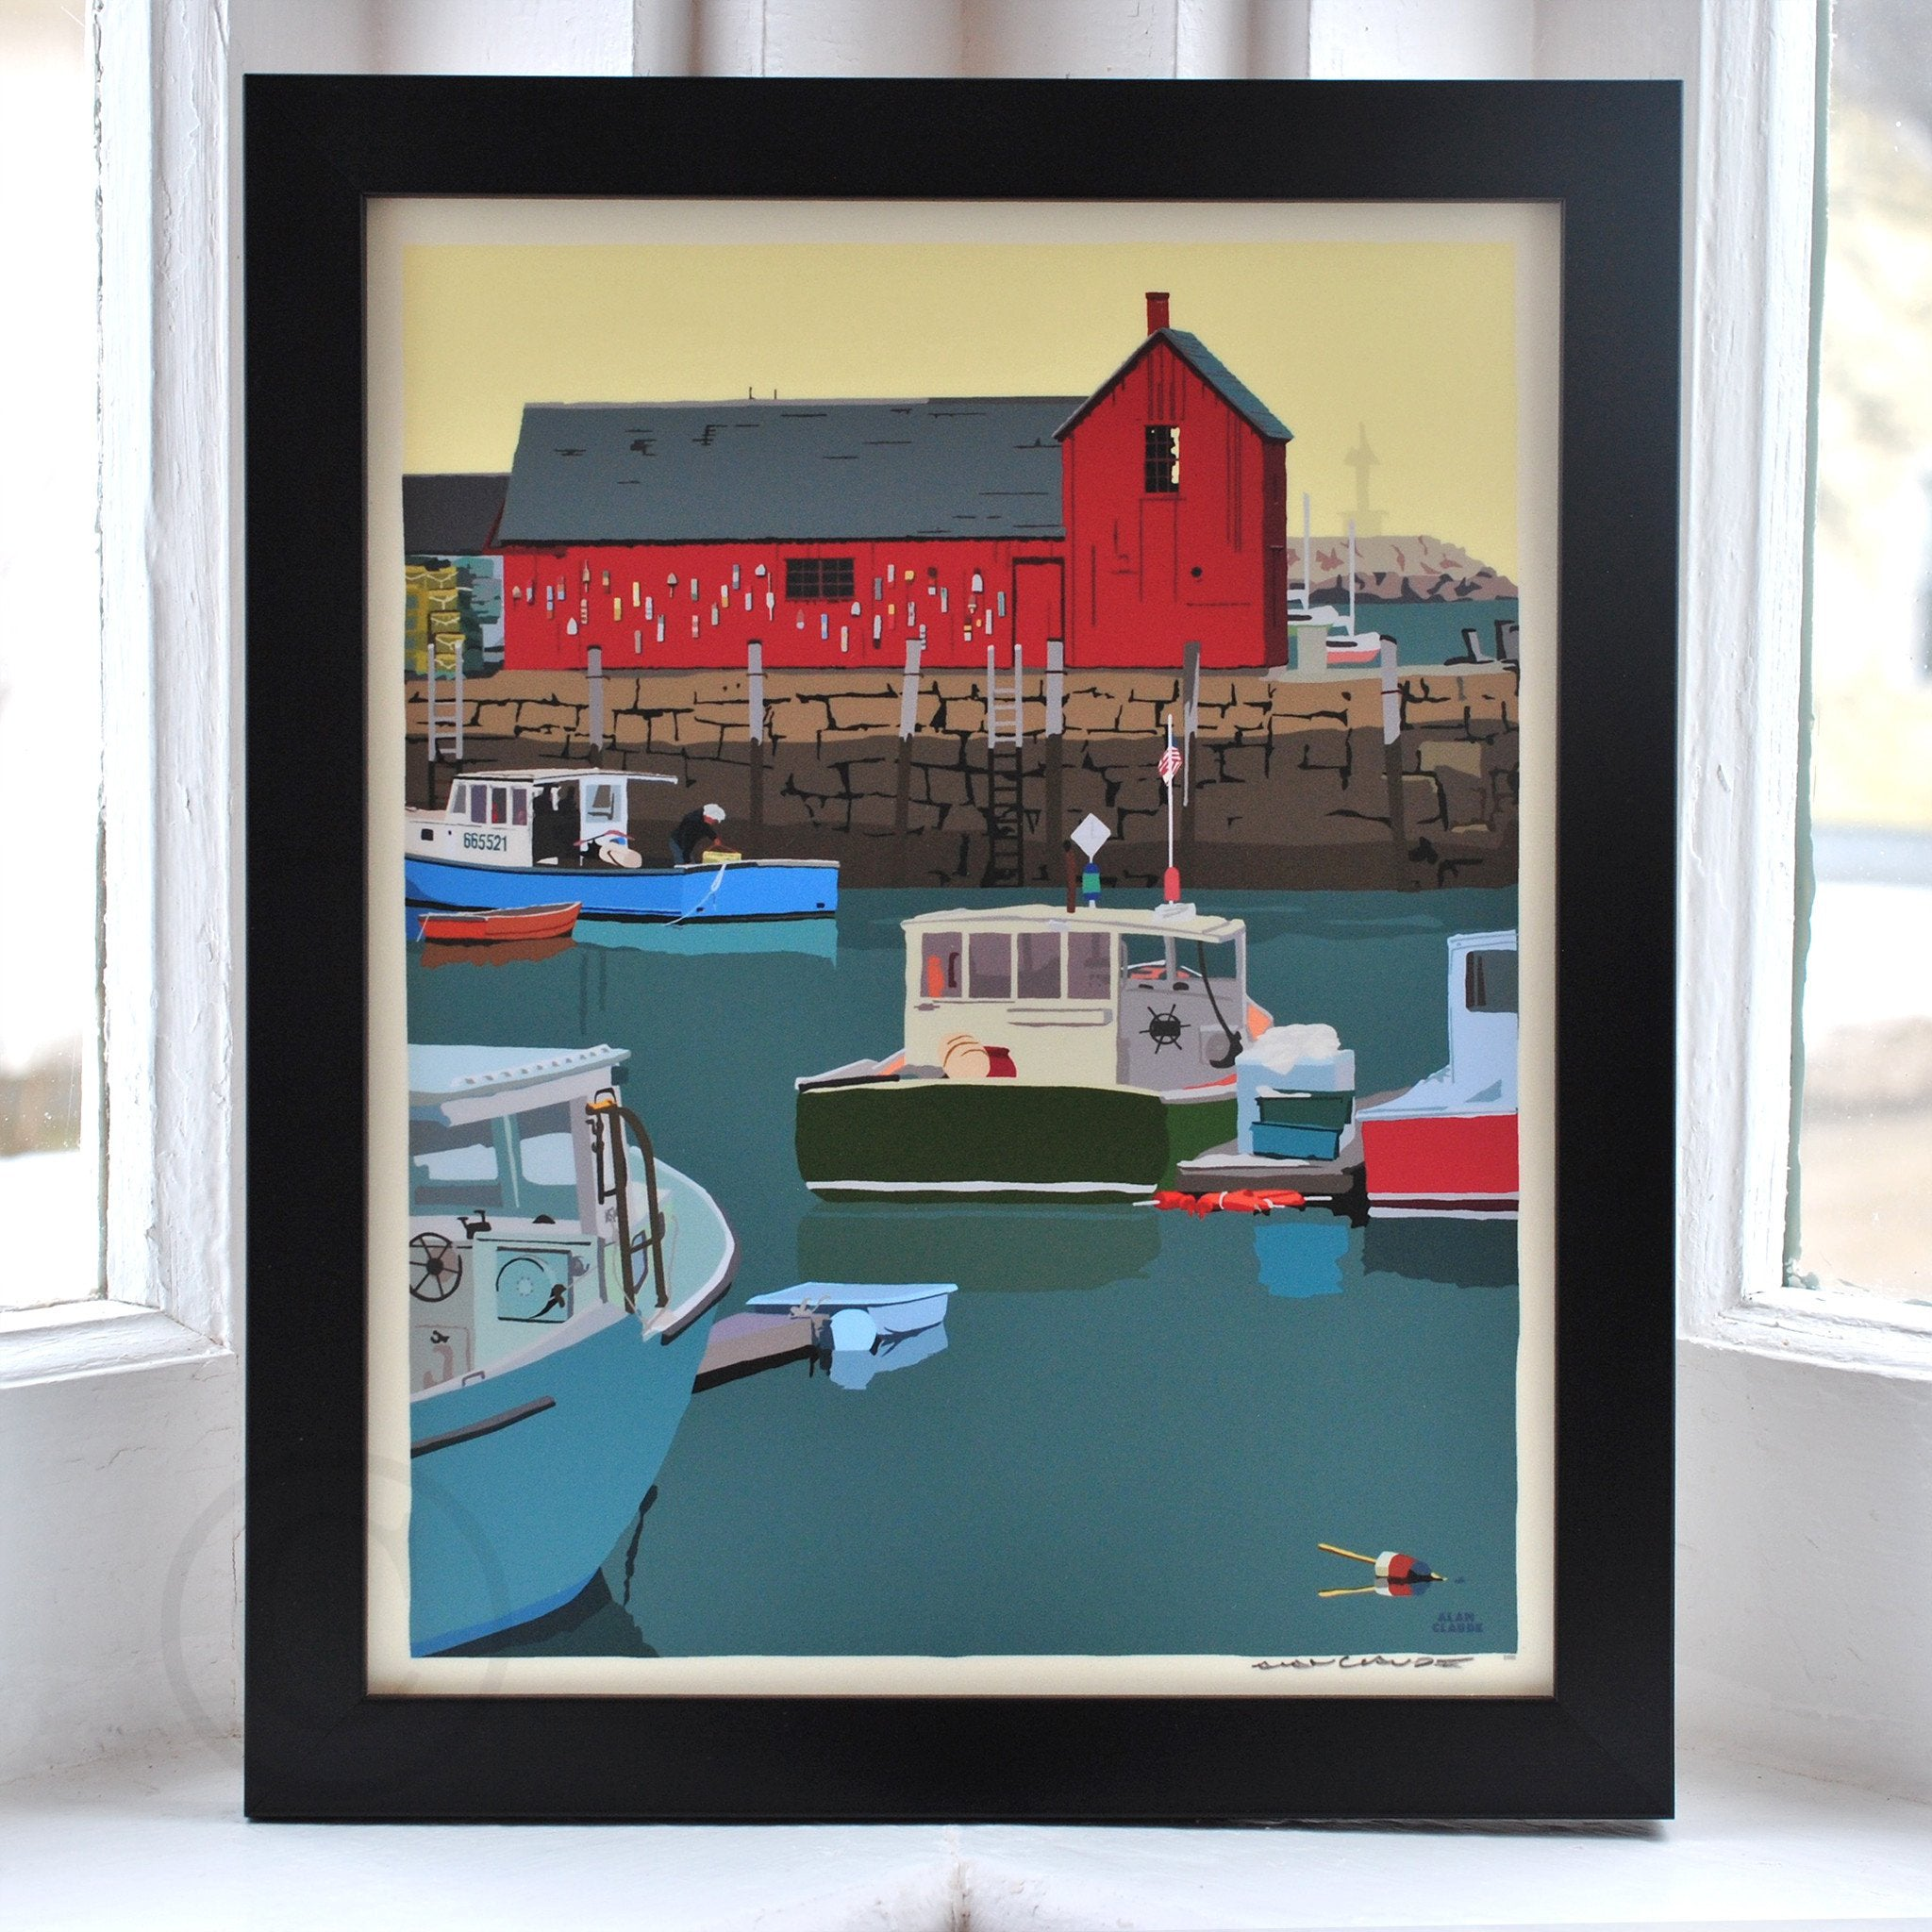 "Motif #1 - version A - Art Print 8"" x 10"" Framed Wall Poster - Massachusetts"